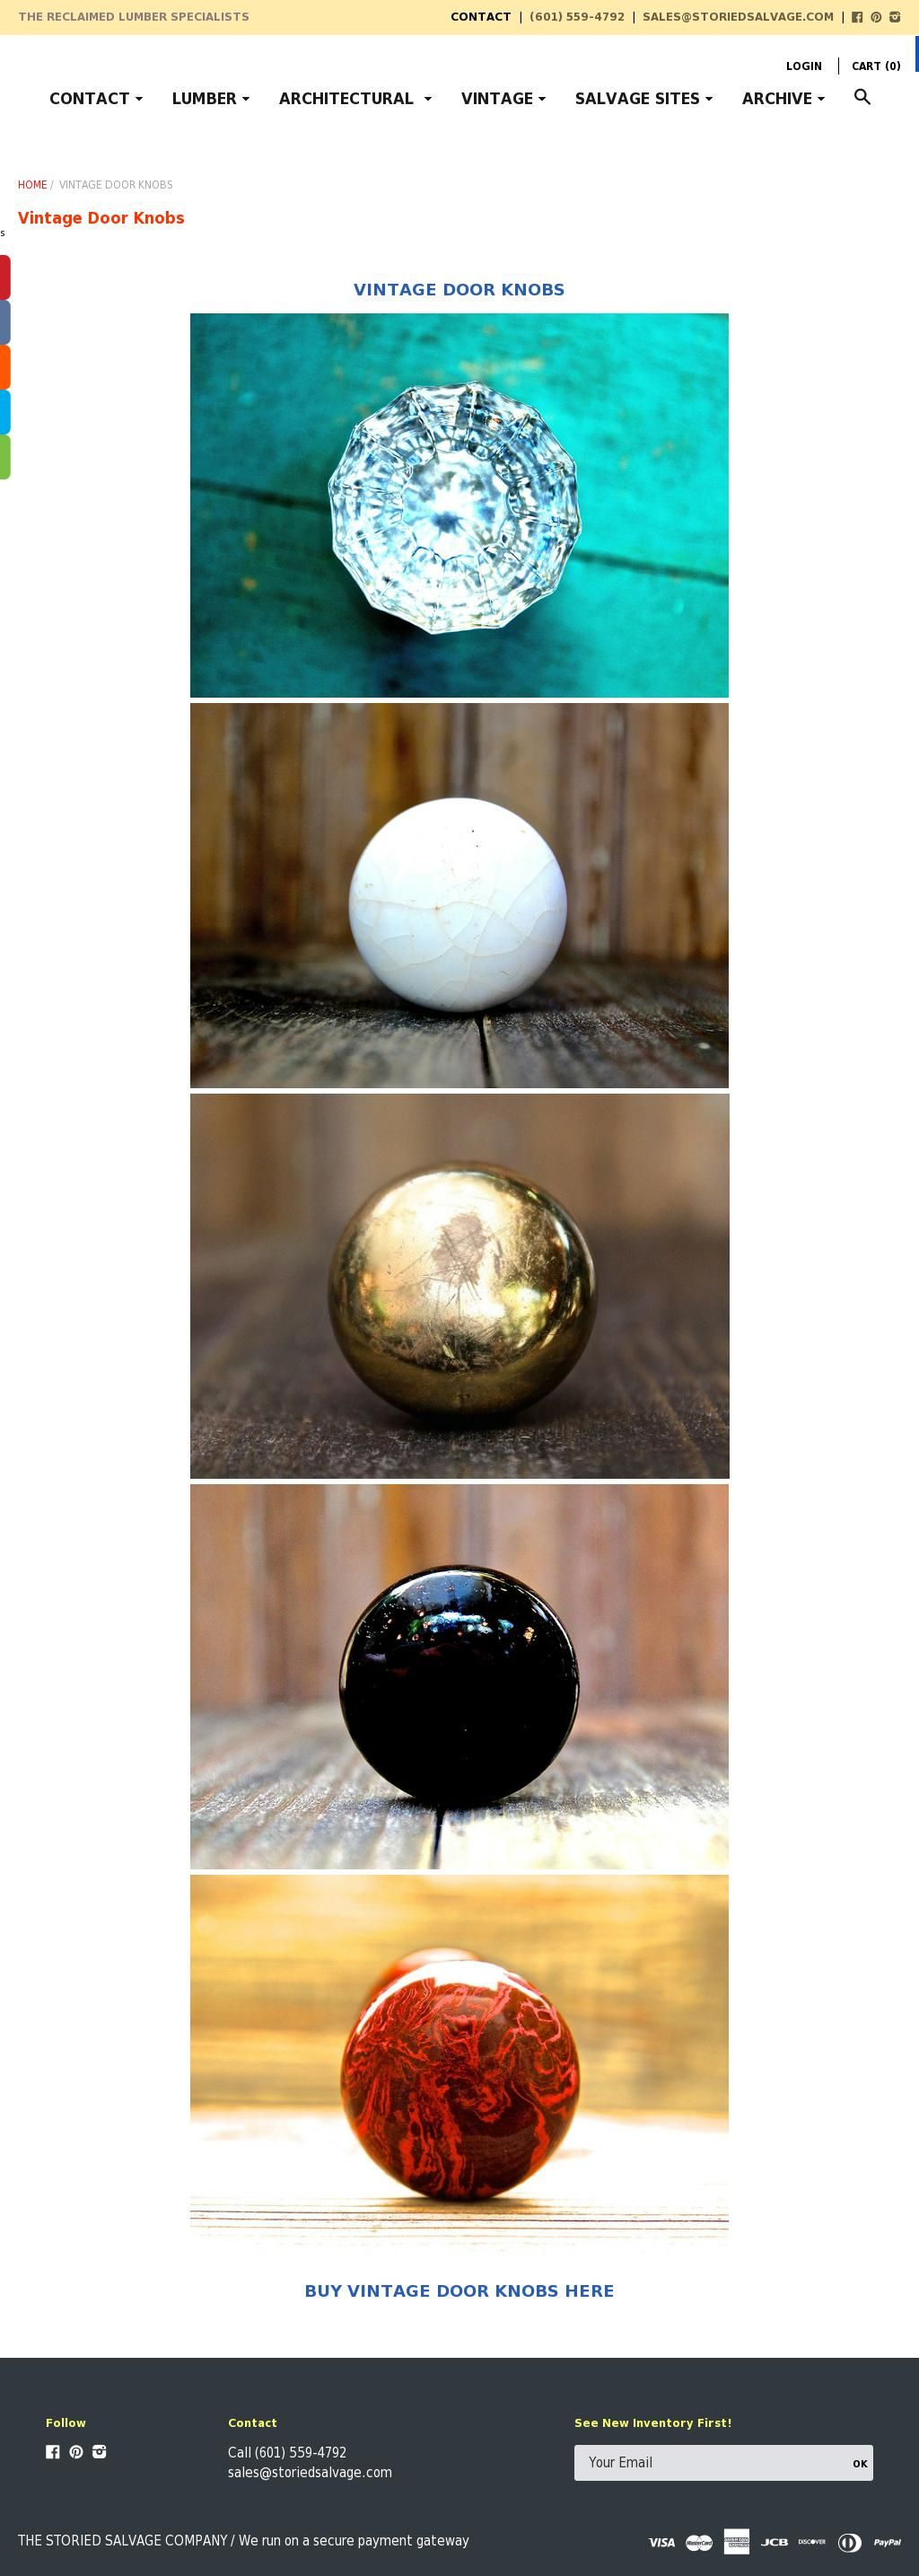 The most popular types of vintage door knobs. In order: 12 sided glass door knob, white porcelain door knob, brass plated door knob, black porcelain door knob, Bennington (Tiger's Eye) porcelain door knob. We also sell many other vintage knobs as well as other vintage hardware such as backplates, push plates and door hinges as well as vintage doors.